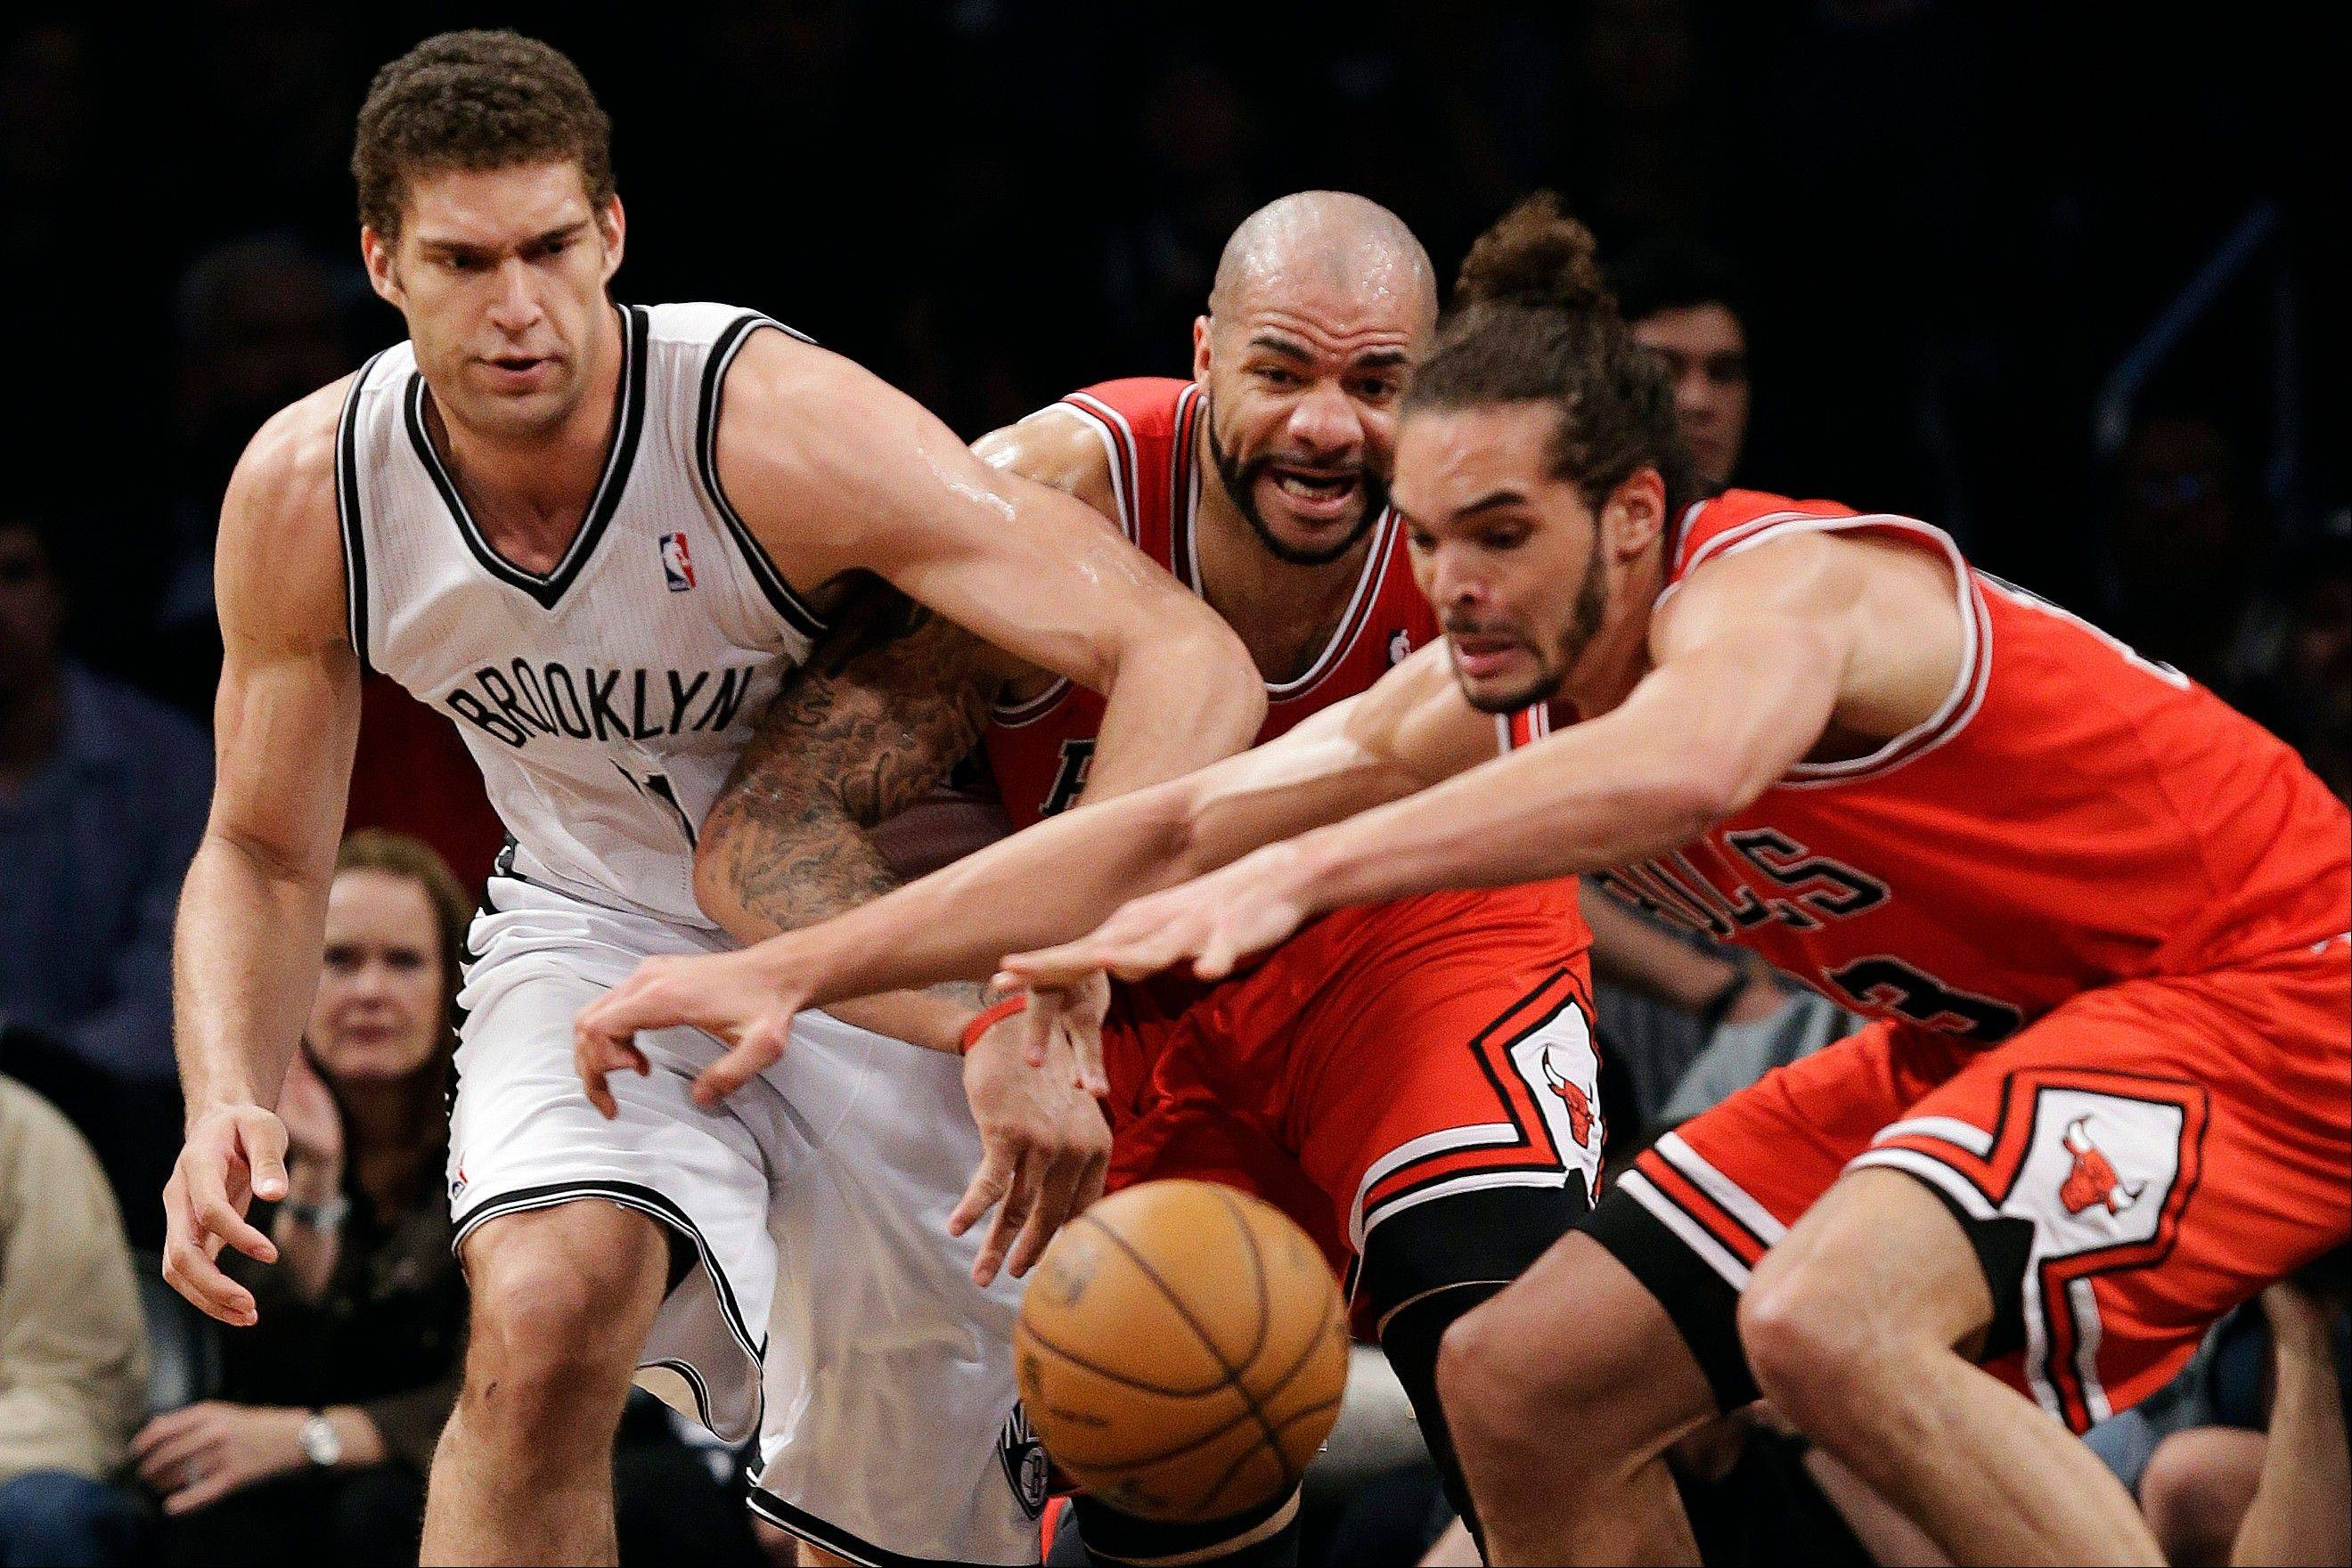 Brooklyn Nets center Brook Lopez (11), Chicago Bulls forward Carlos Boozer, center, and center Joakim Noah, right, compete for a loose ball in the first half of Game 5 of their first-round NBA basketball playoff series Monday in New York.